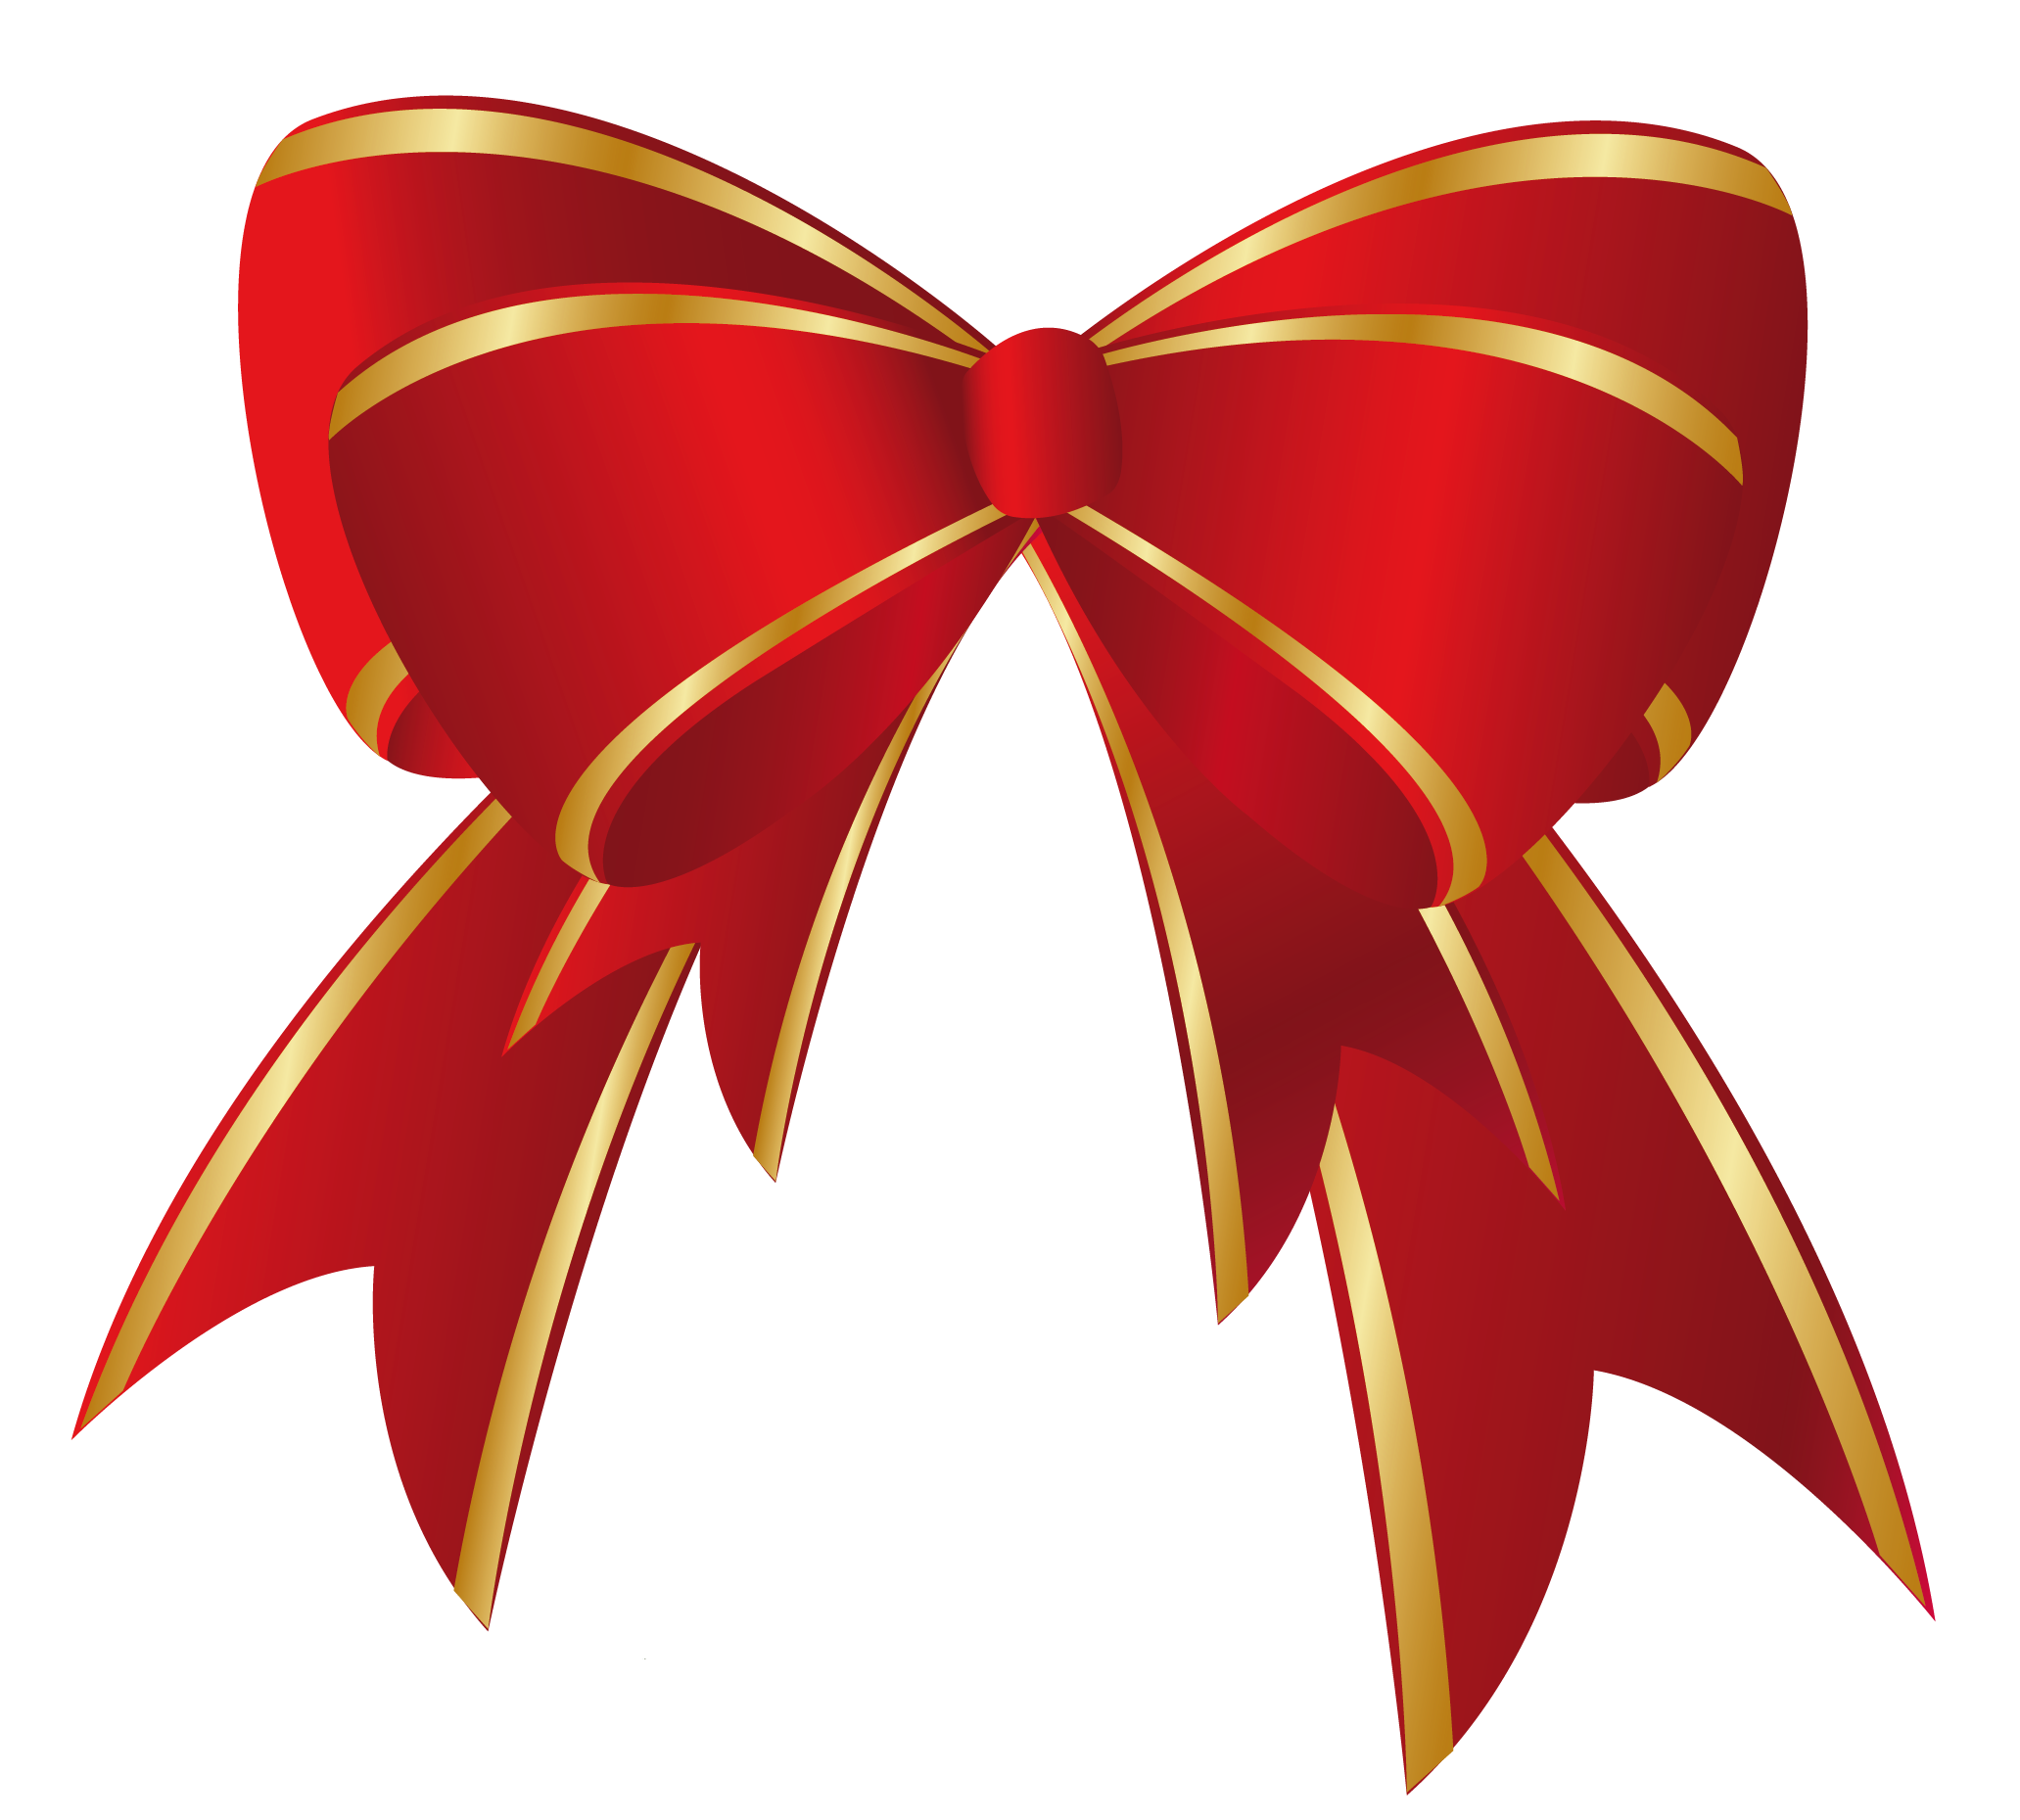 Christmas bow png transparent. Image arts